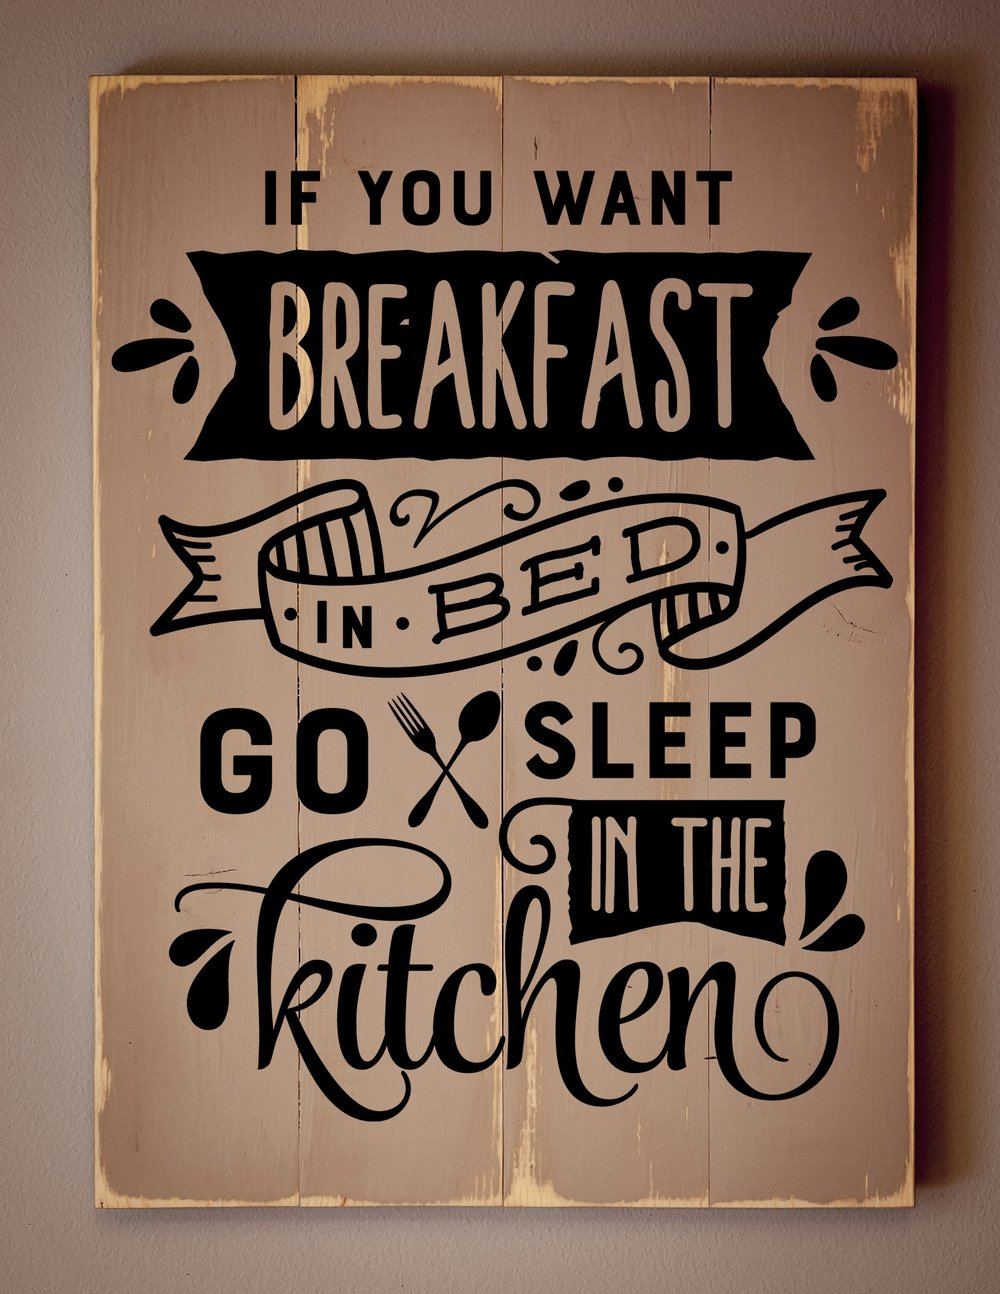 If you want Breakfast in bed..